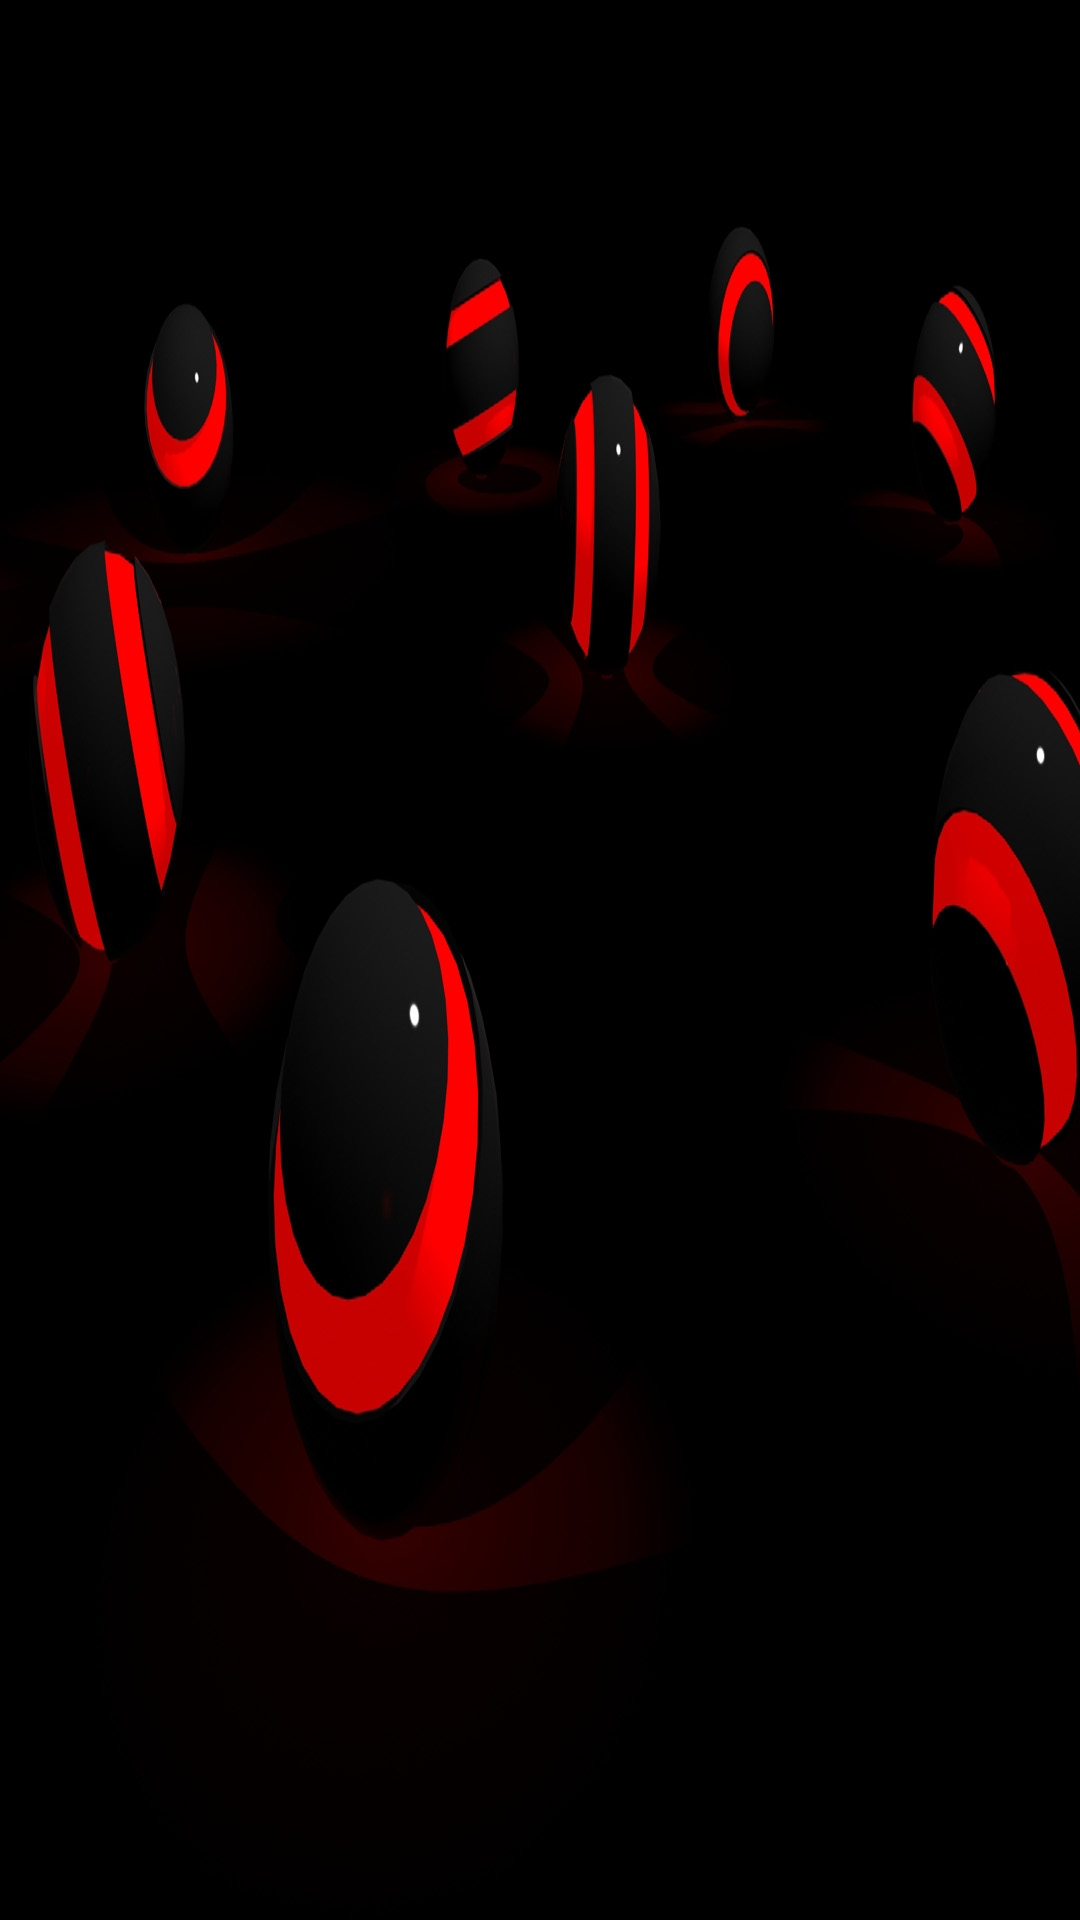 Download Red And Black Iphone Wallpaper Gallery